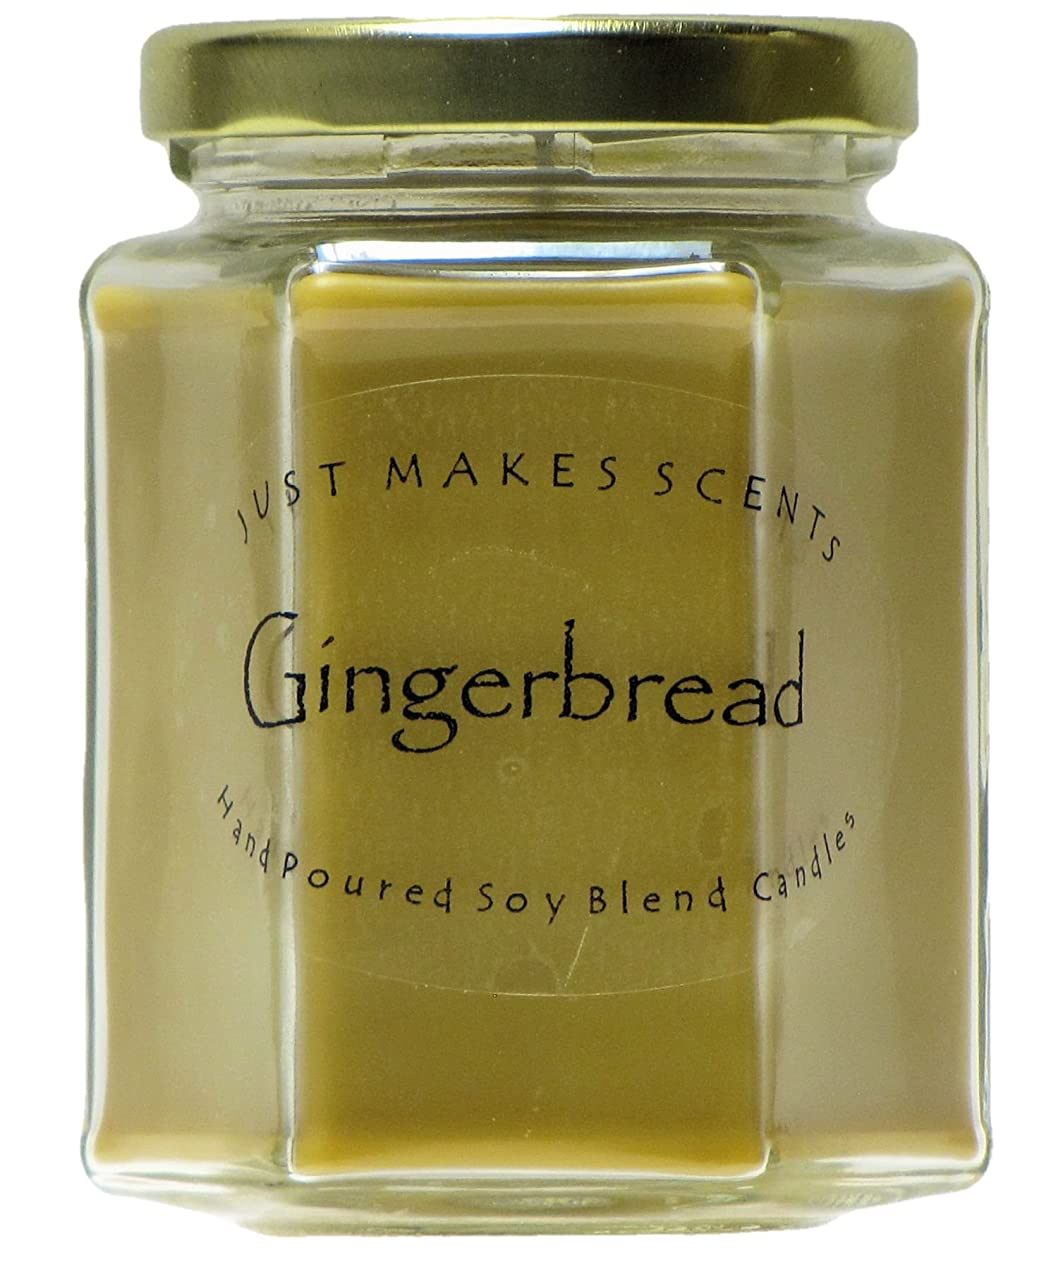 放散する乳剤招待Gingerbread香りつきBlended Soy Candle by Just Makes Scents